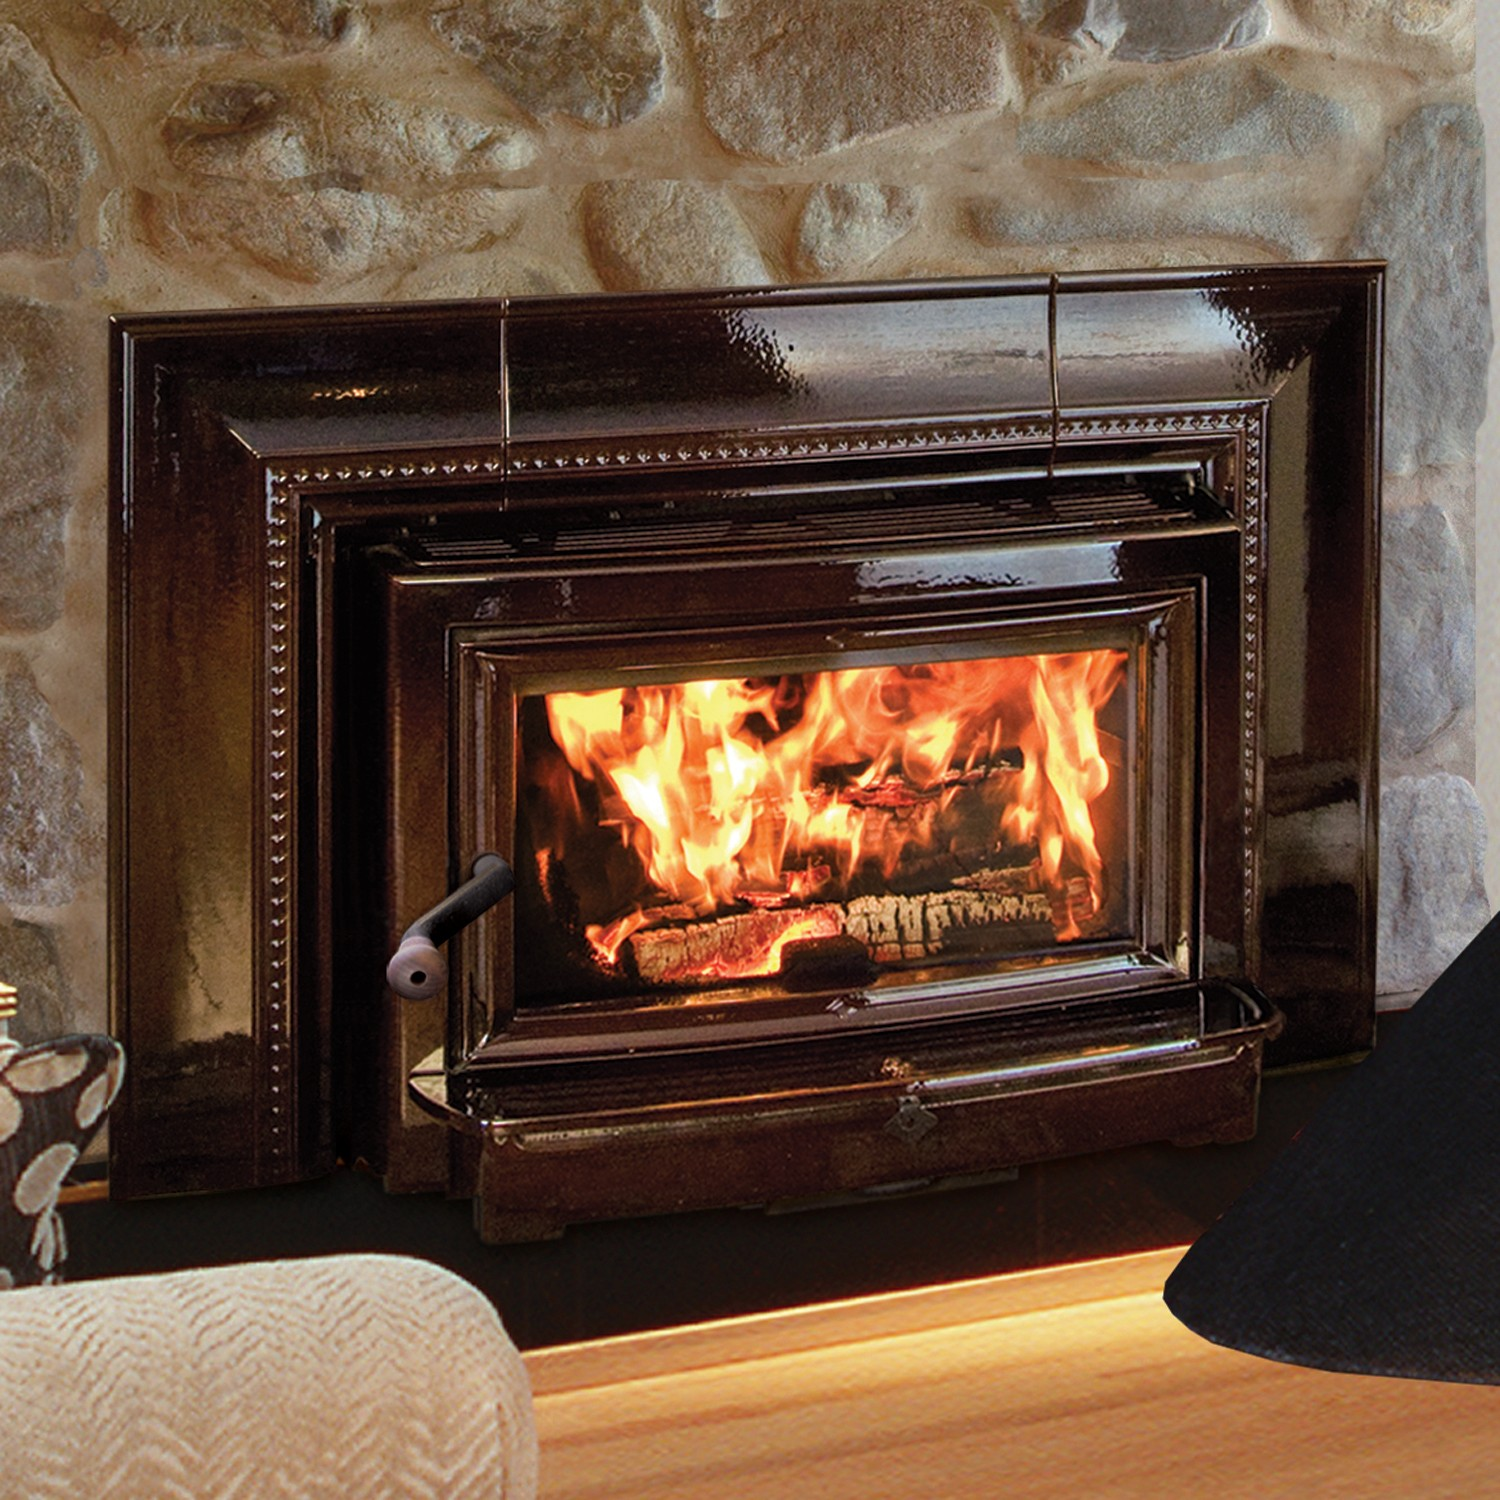 Breathe Life And Warmth Into The Heart Of Your Home With A High Efficiency,  Restoration Quality Mendota Gas Fireplace ...